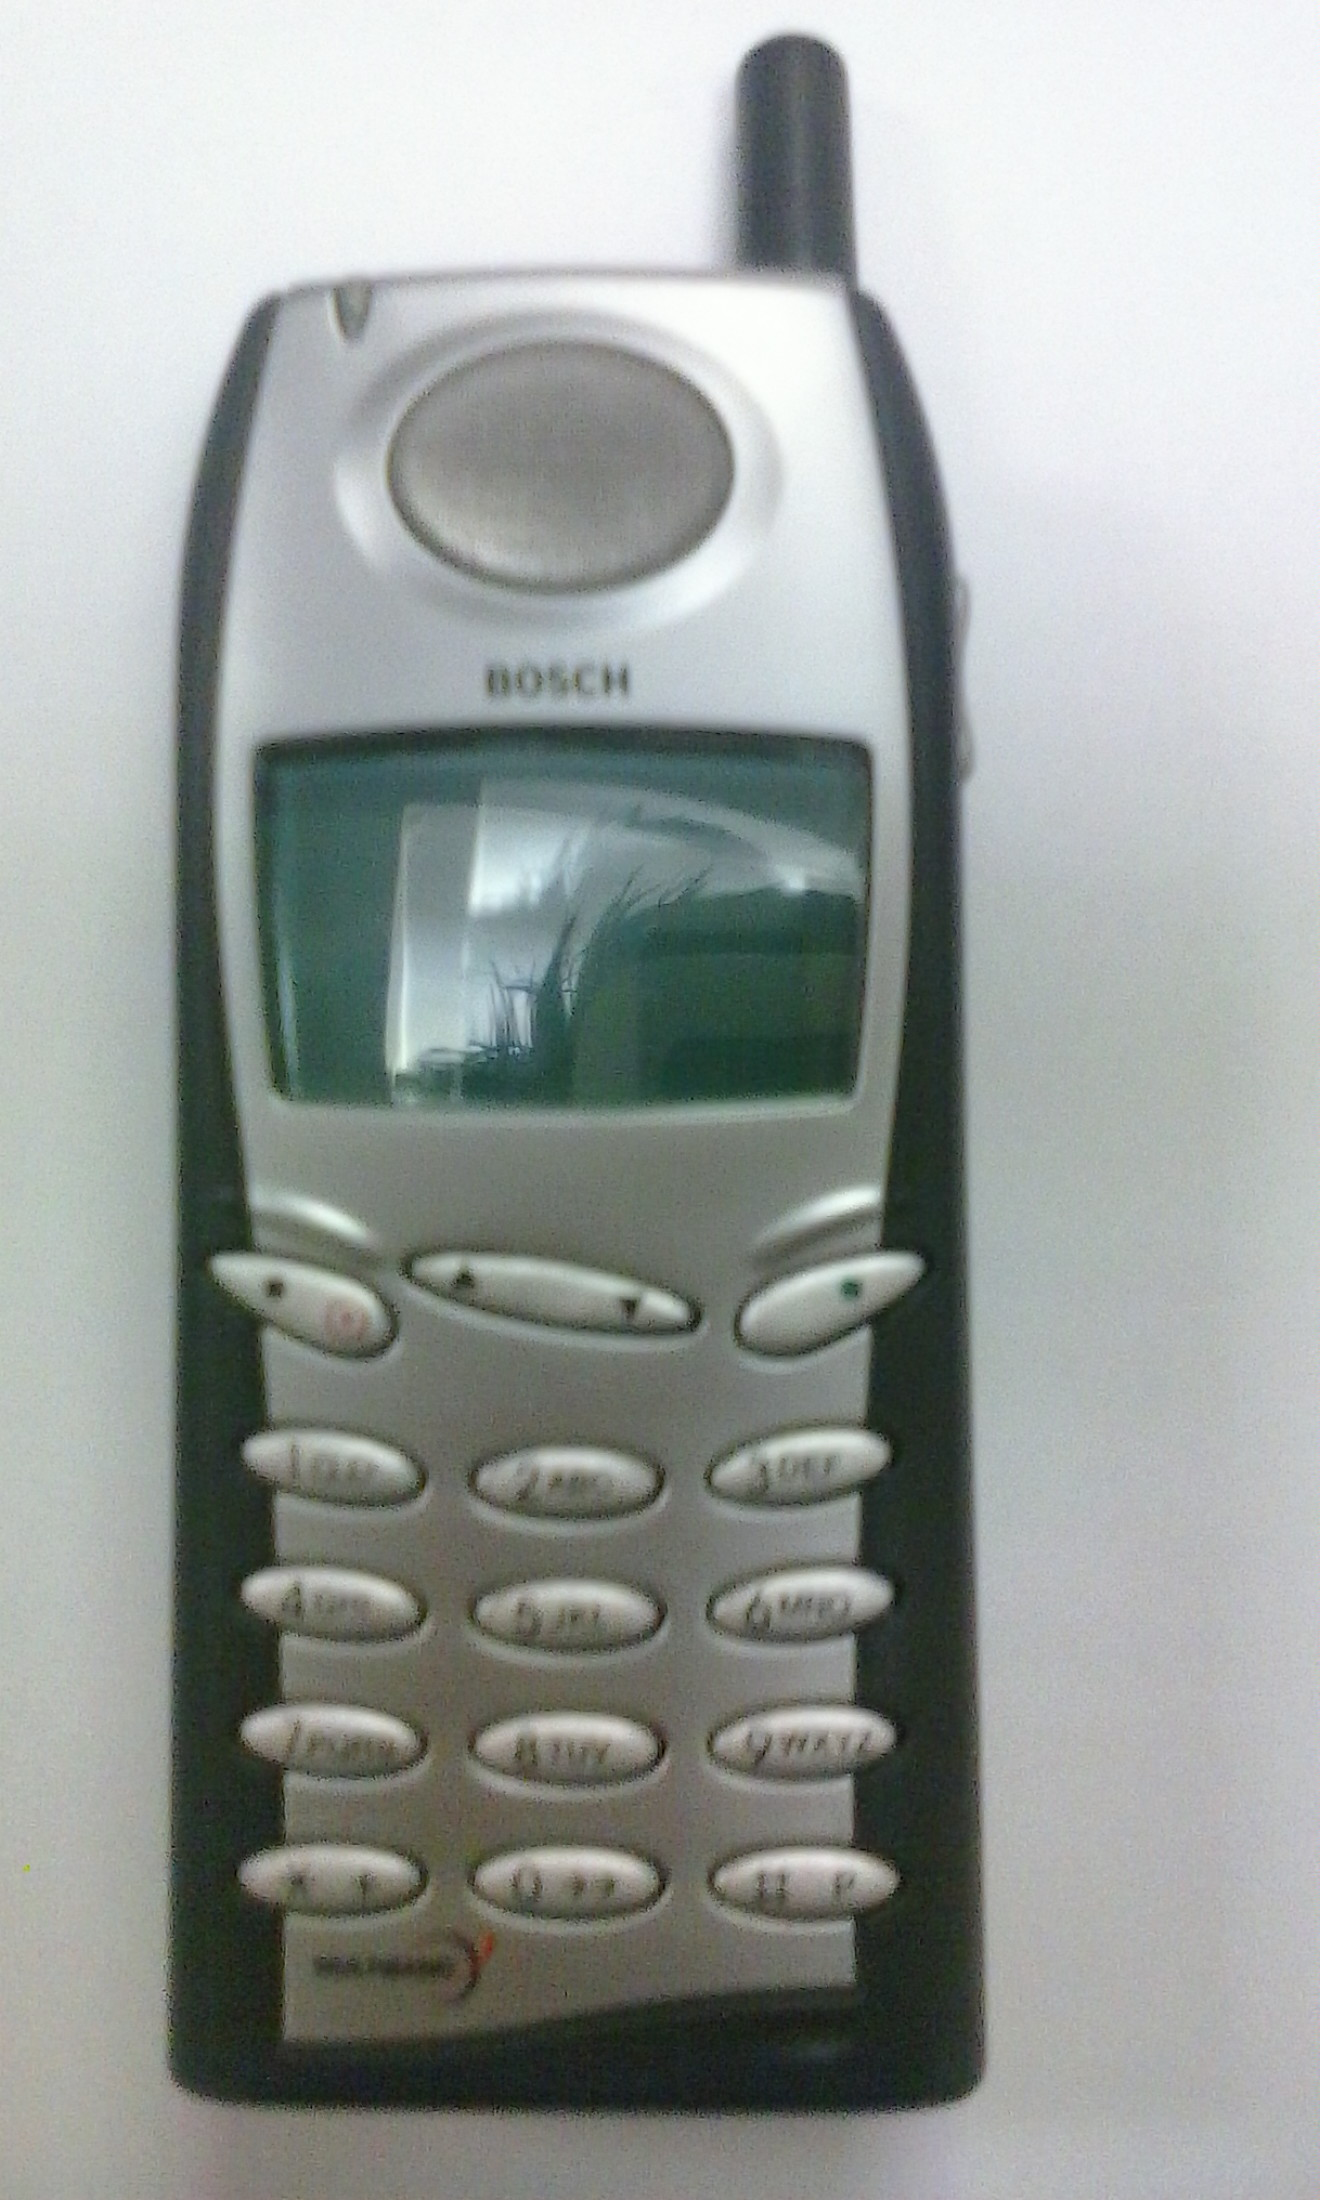 Bosch 909 - Cellphone selling as Spare Parts